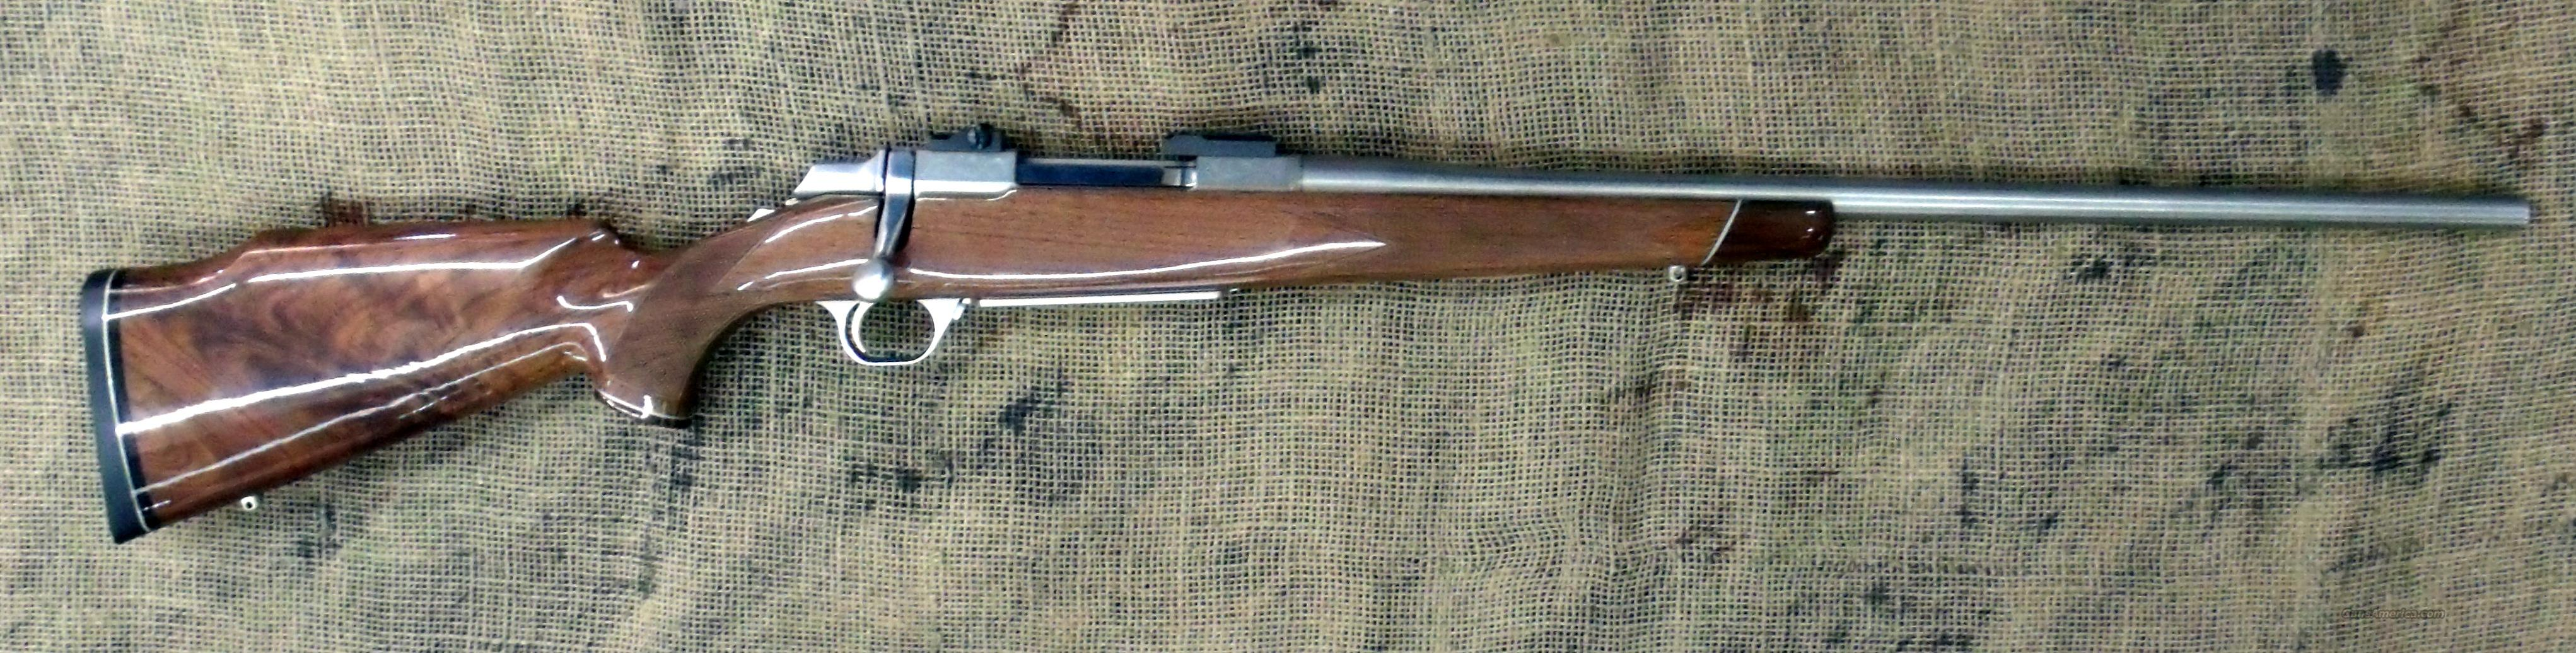 BROWNING A-Bolt II, White Gold Med., .300 Win. Mag. Cal.  Guns > Rifles > Browning Rifles > Bolt Action > Hunting > Stainless